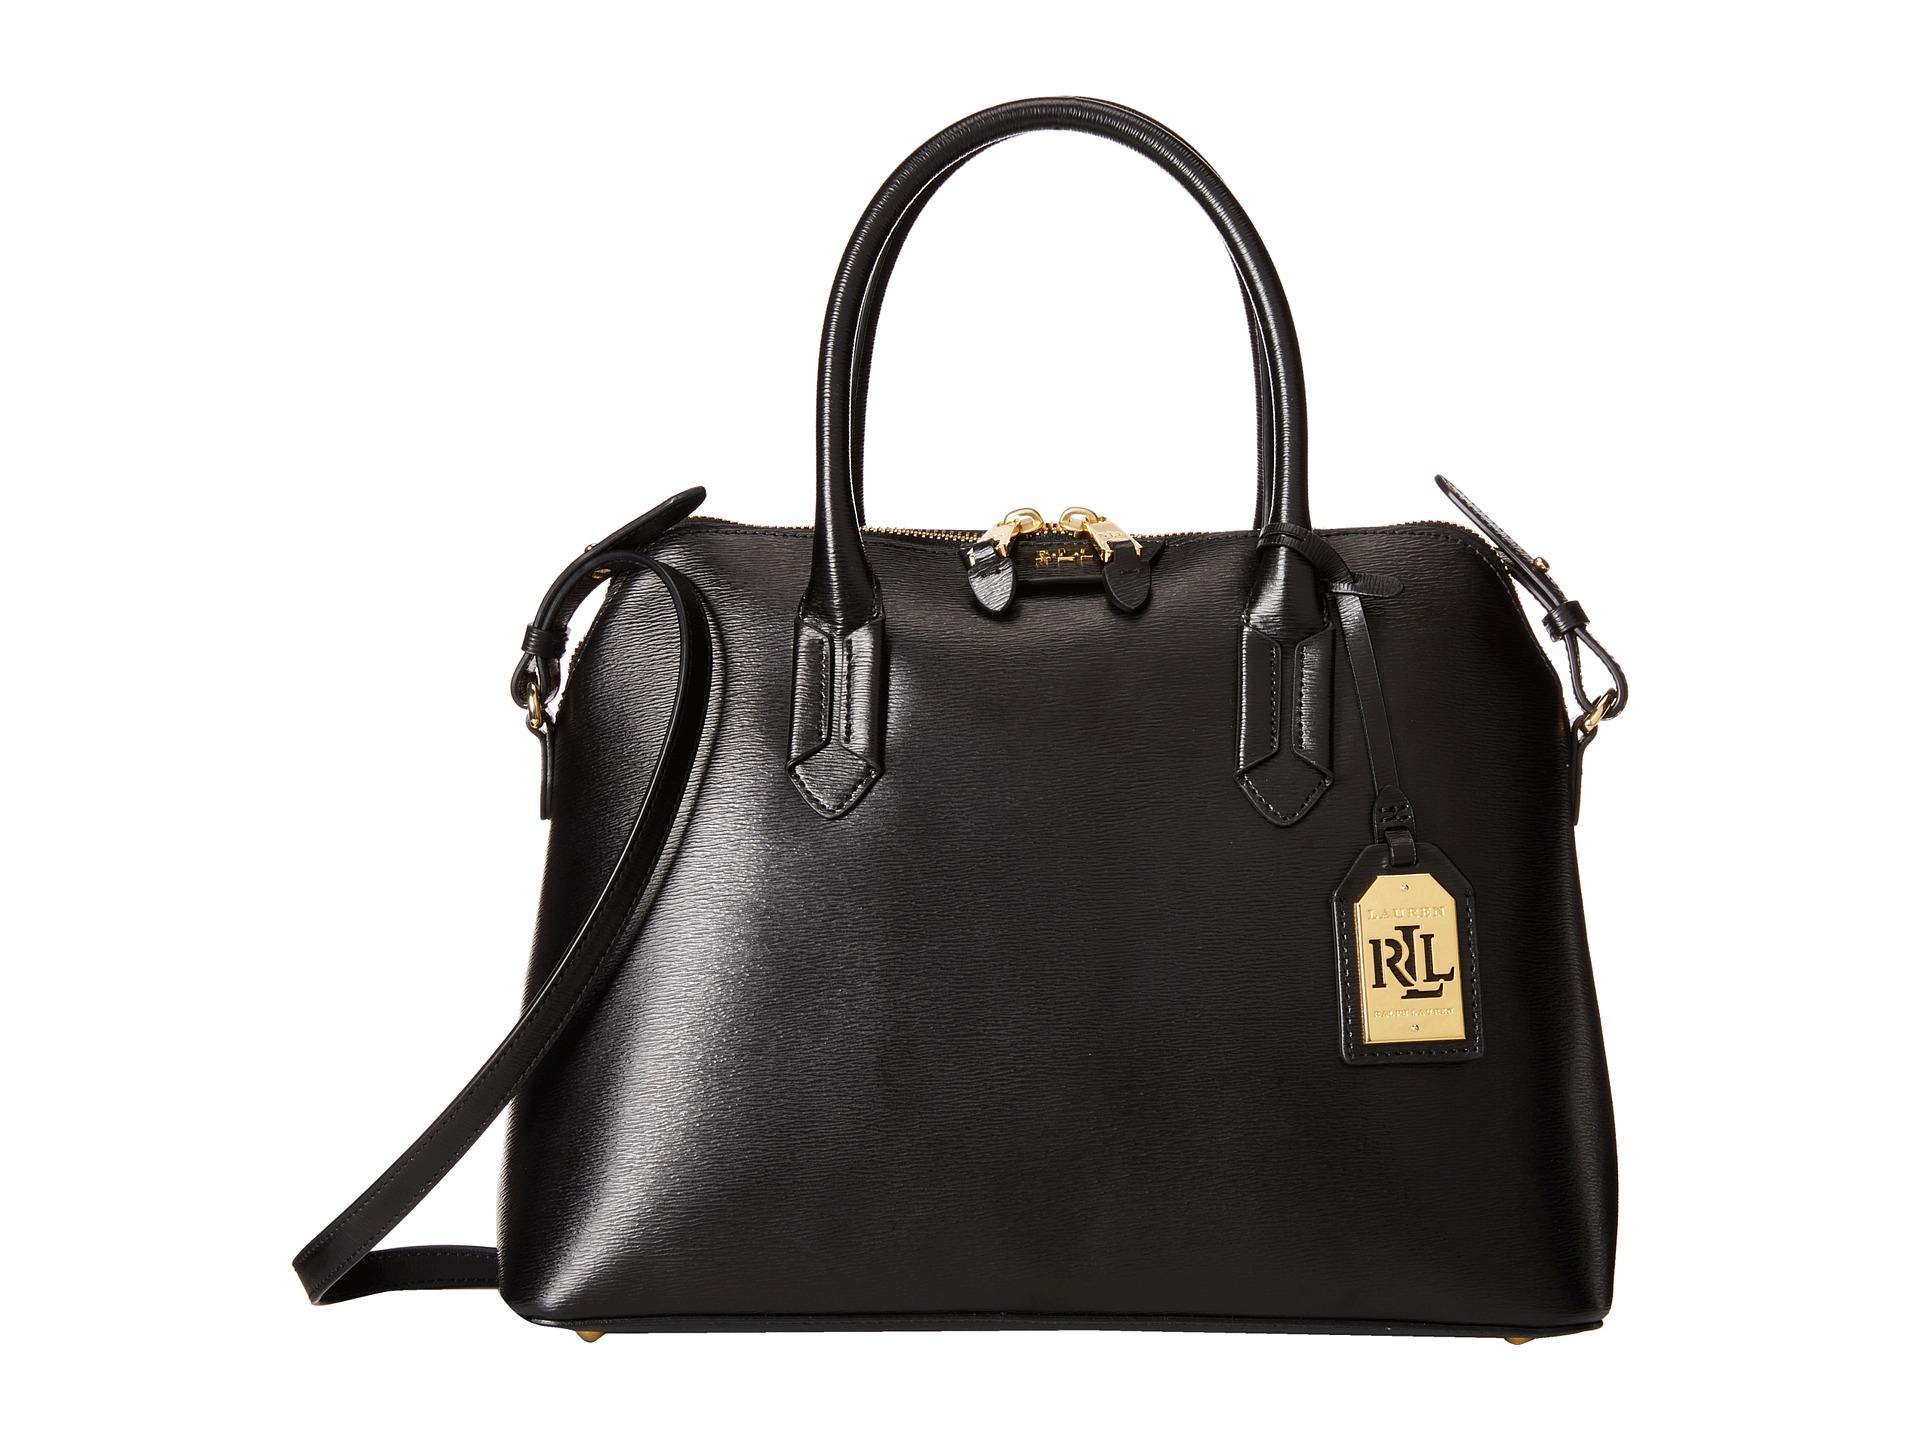 lauren by ralph lauren tate dome satchel in black black black gold lyst. Black Bedroom Furniture Sets. Home Design Ideas